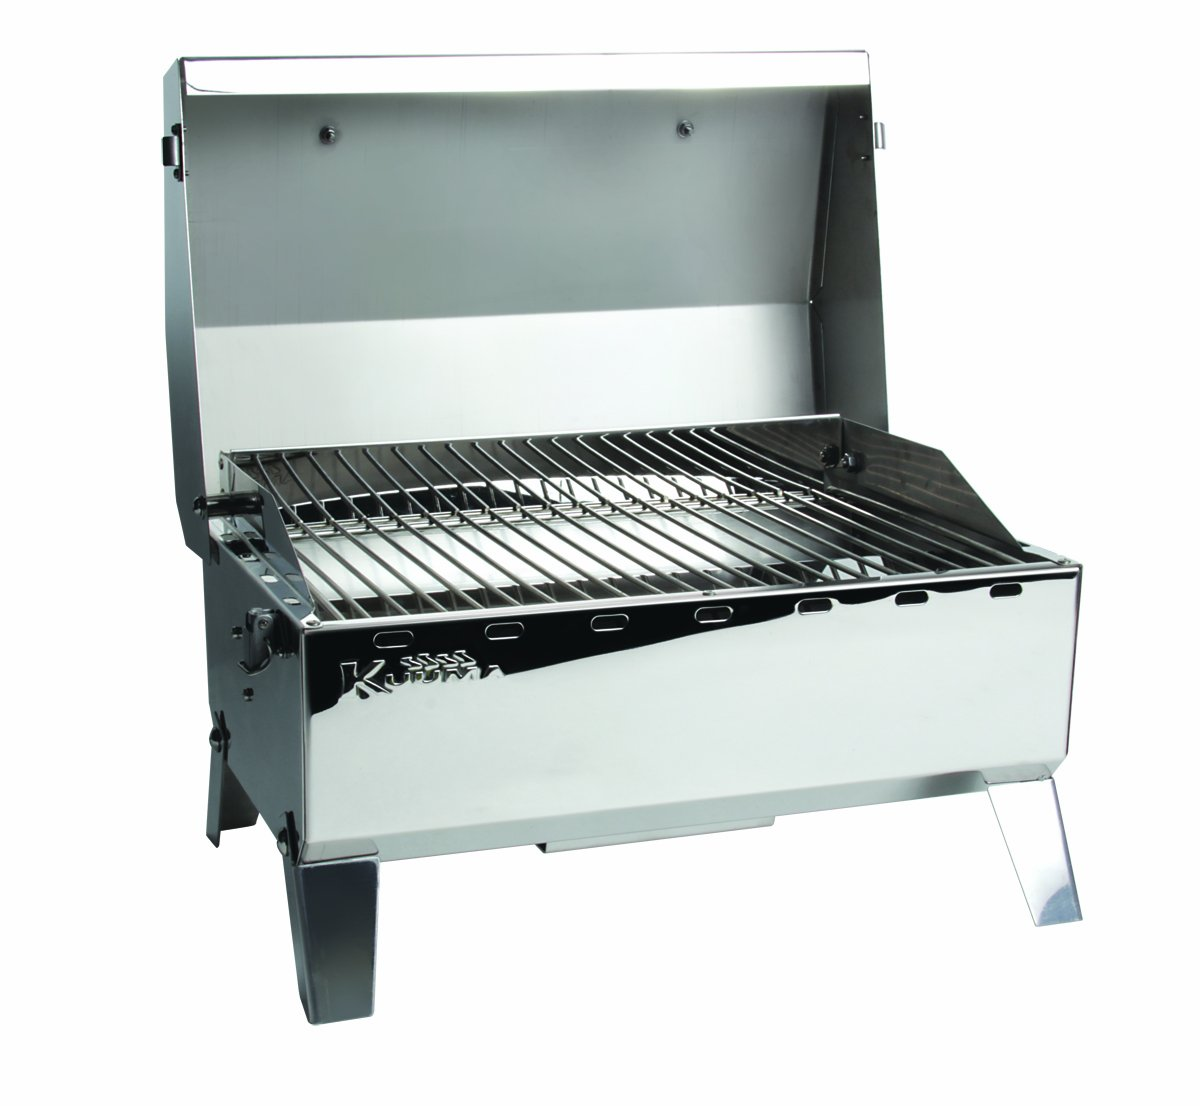 Kumma 58140-a Camco 58140 Stow N' Go, Gas Grill - Pontoon Boat Gas Grills